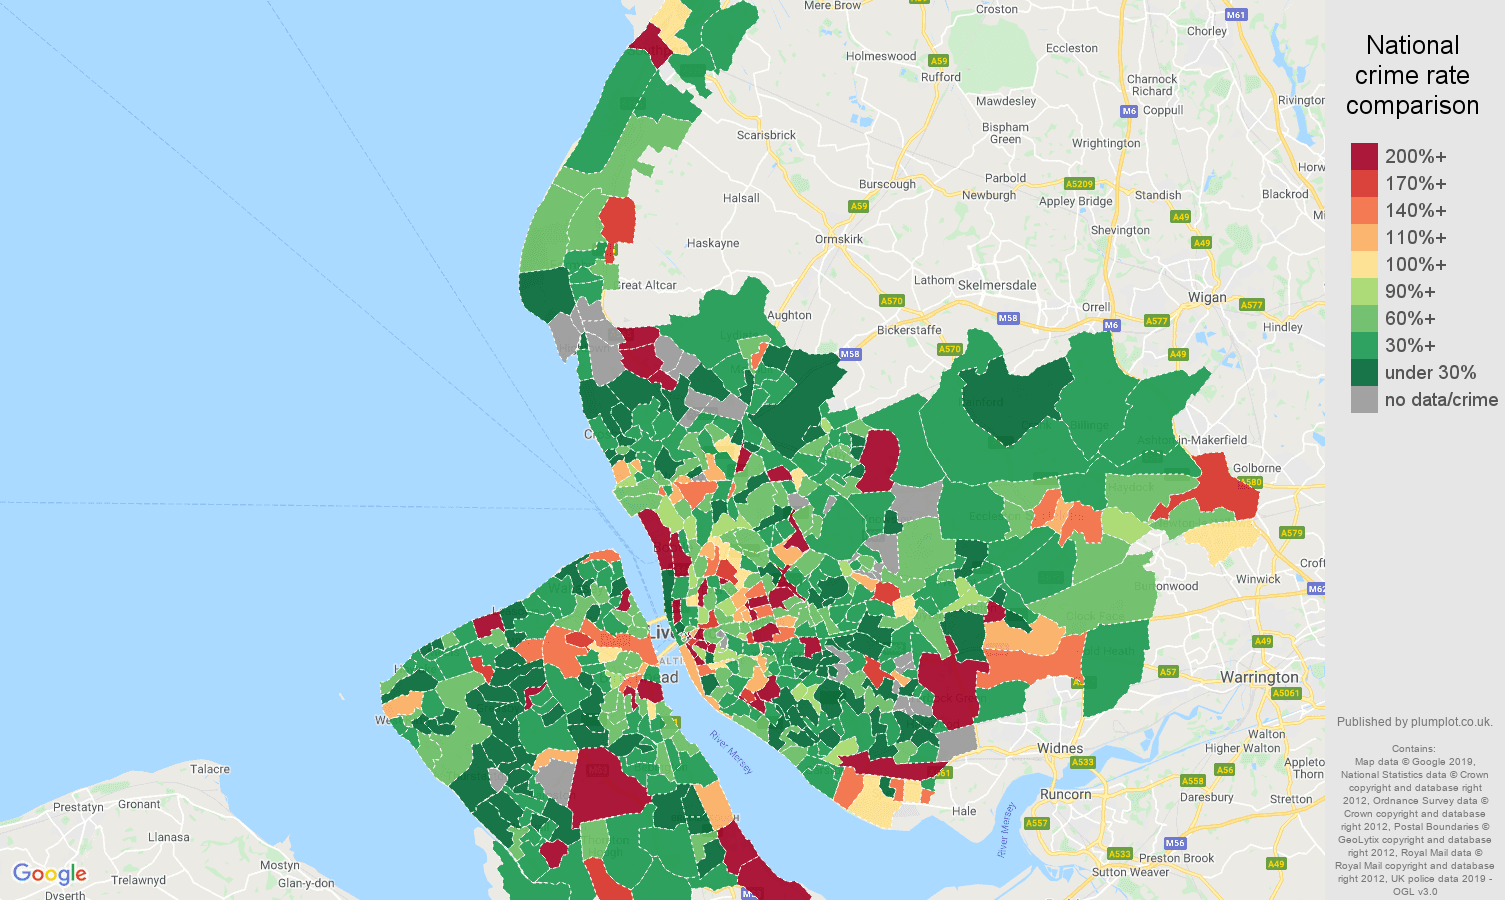 Merseyside other theft crime rate comparison map